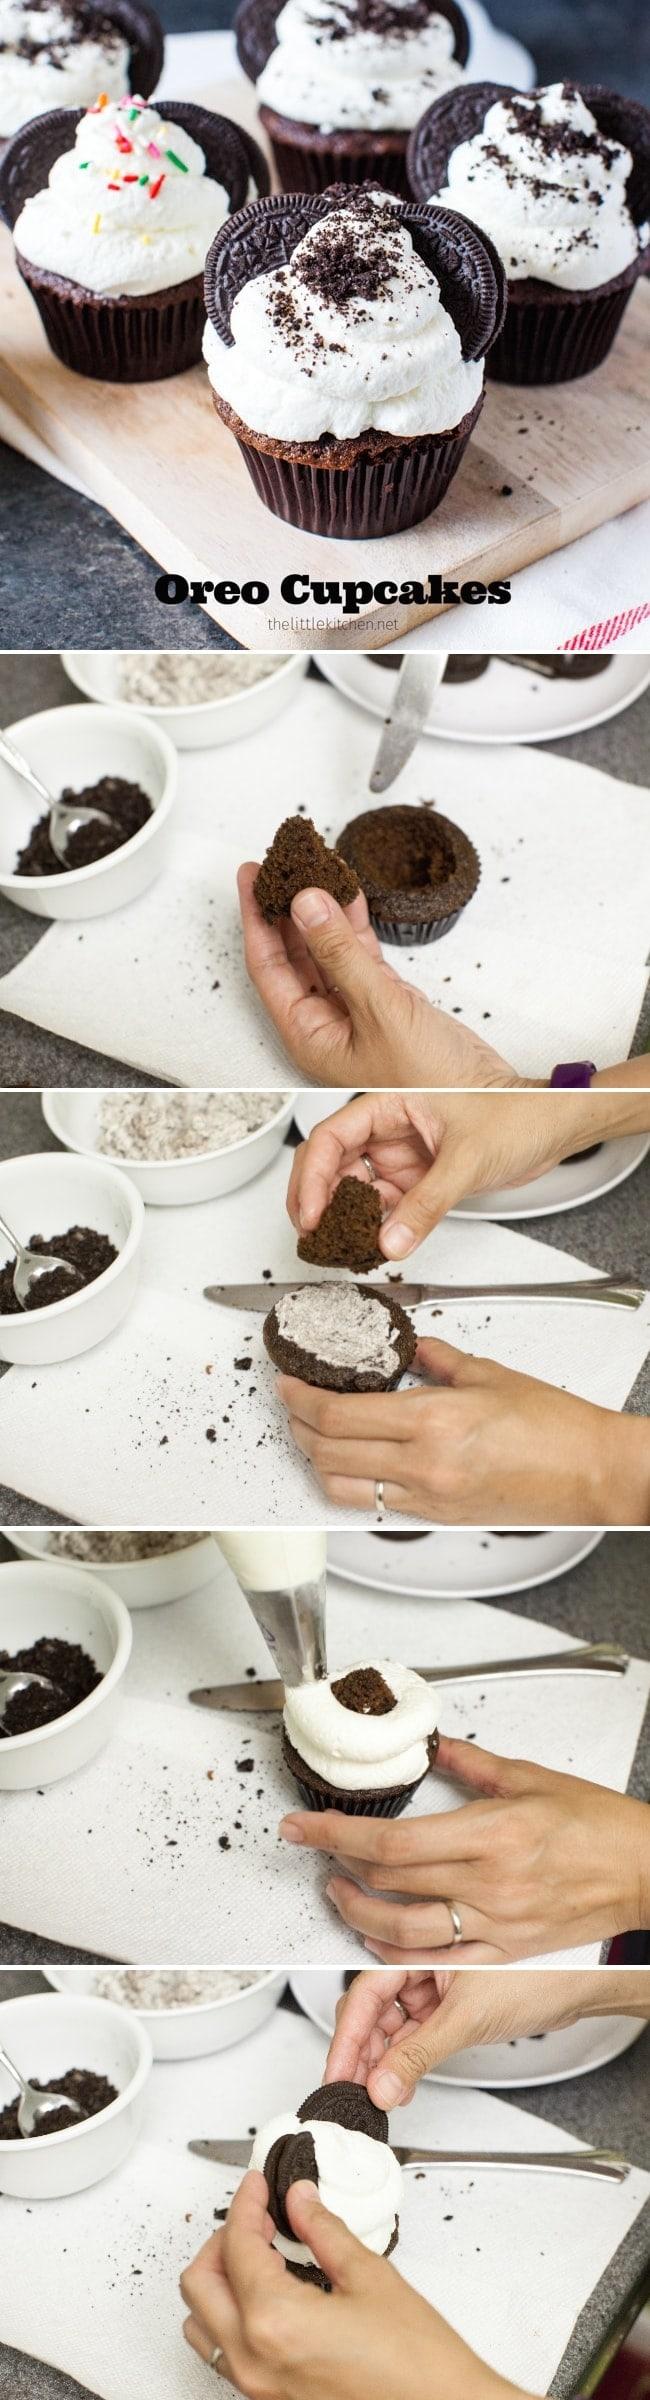 Oreo Cupcakes from thelittlekitchen.net